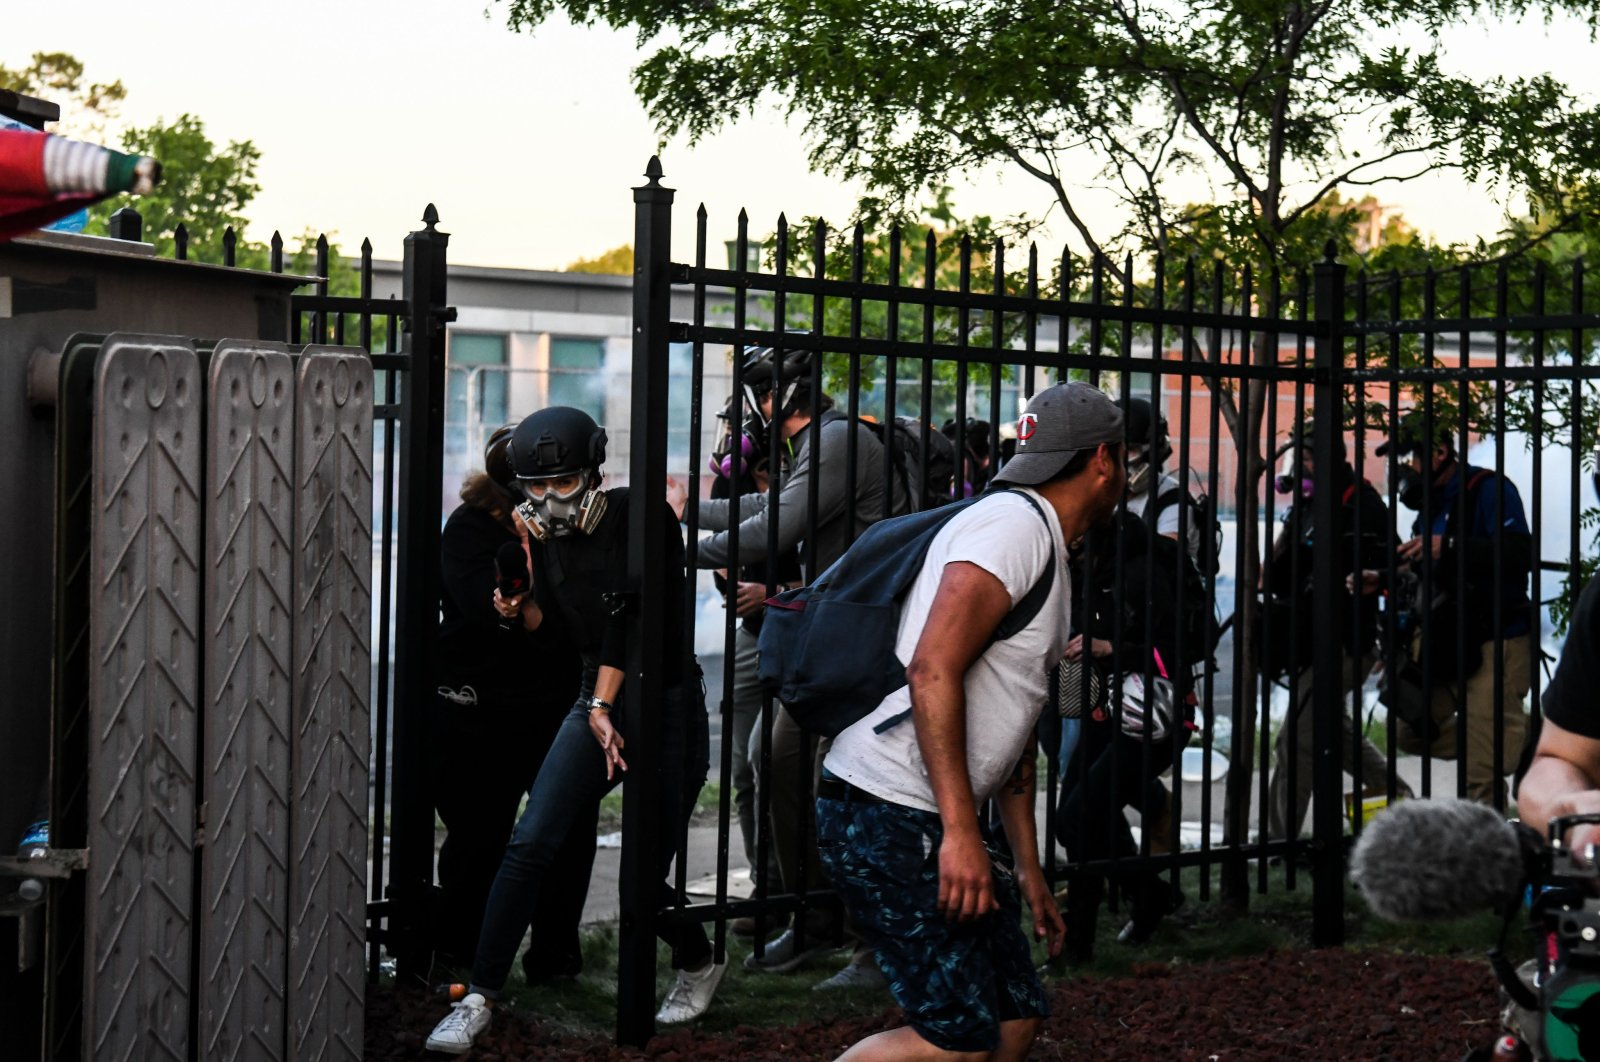 Protestors and media personnel run to take cover as police start firing tear gas and rubber bullets near the 5th police precinct following a demonstration to call for justice for George Floyd, in Minneapolis, Minnesota, U.S., May 30, 2020. (AFP Photo)